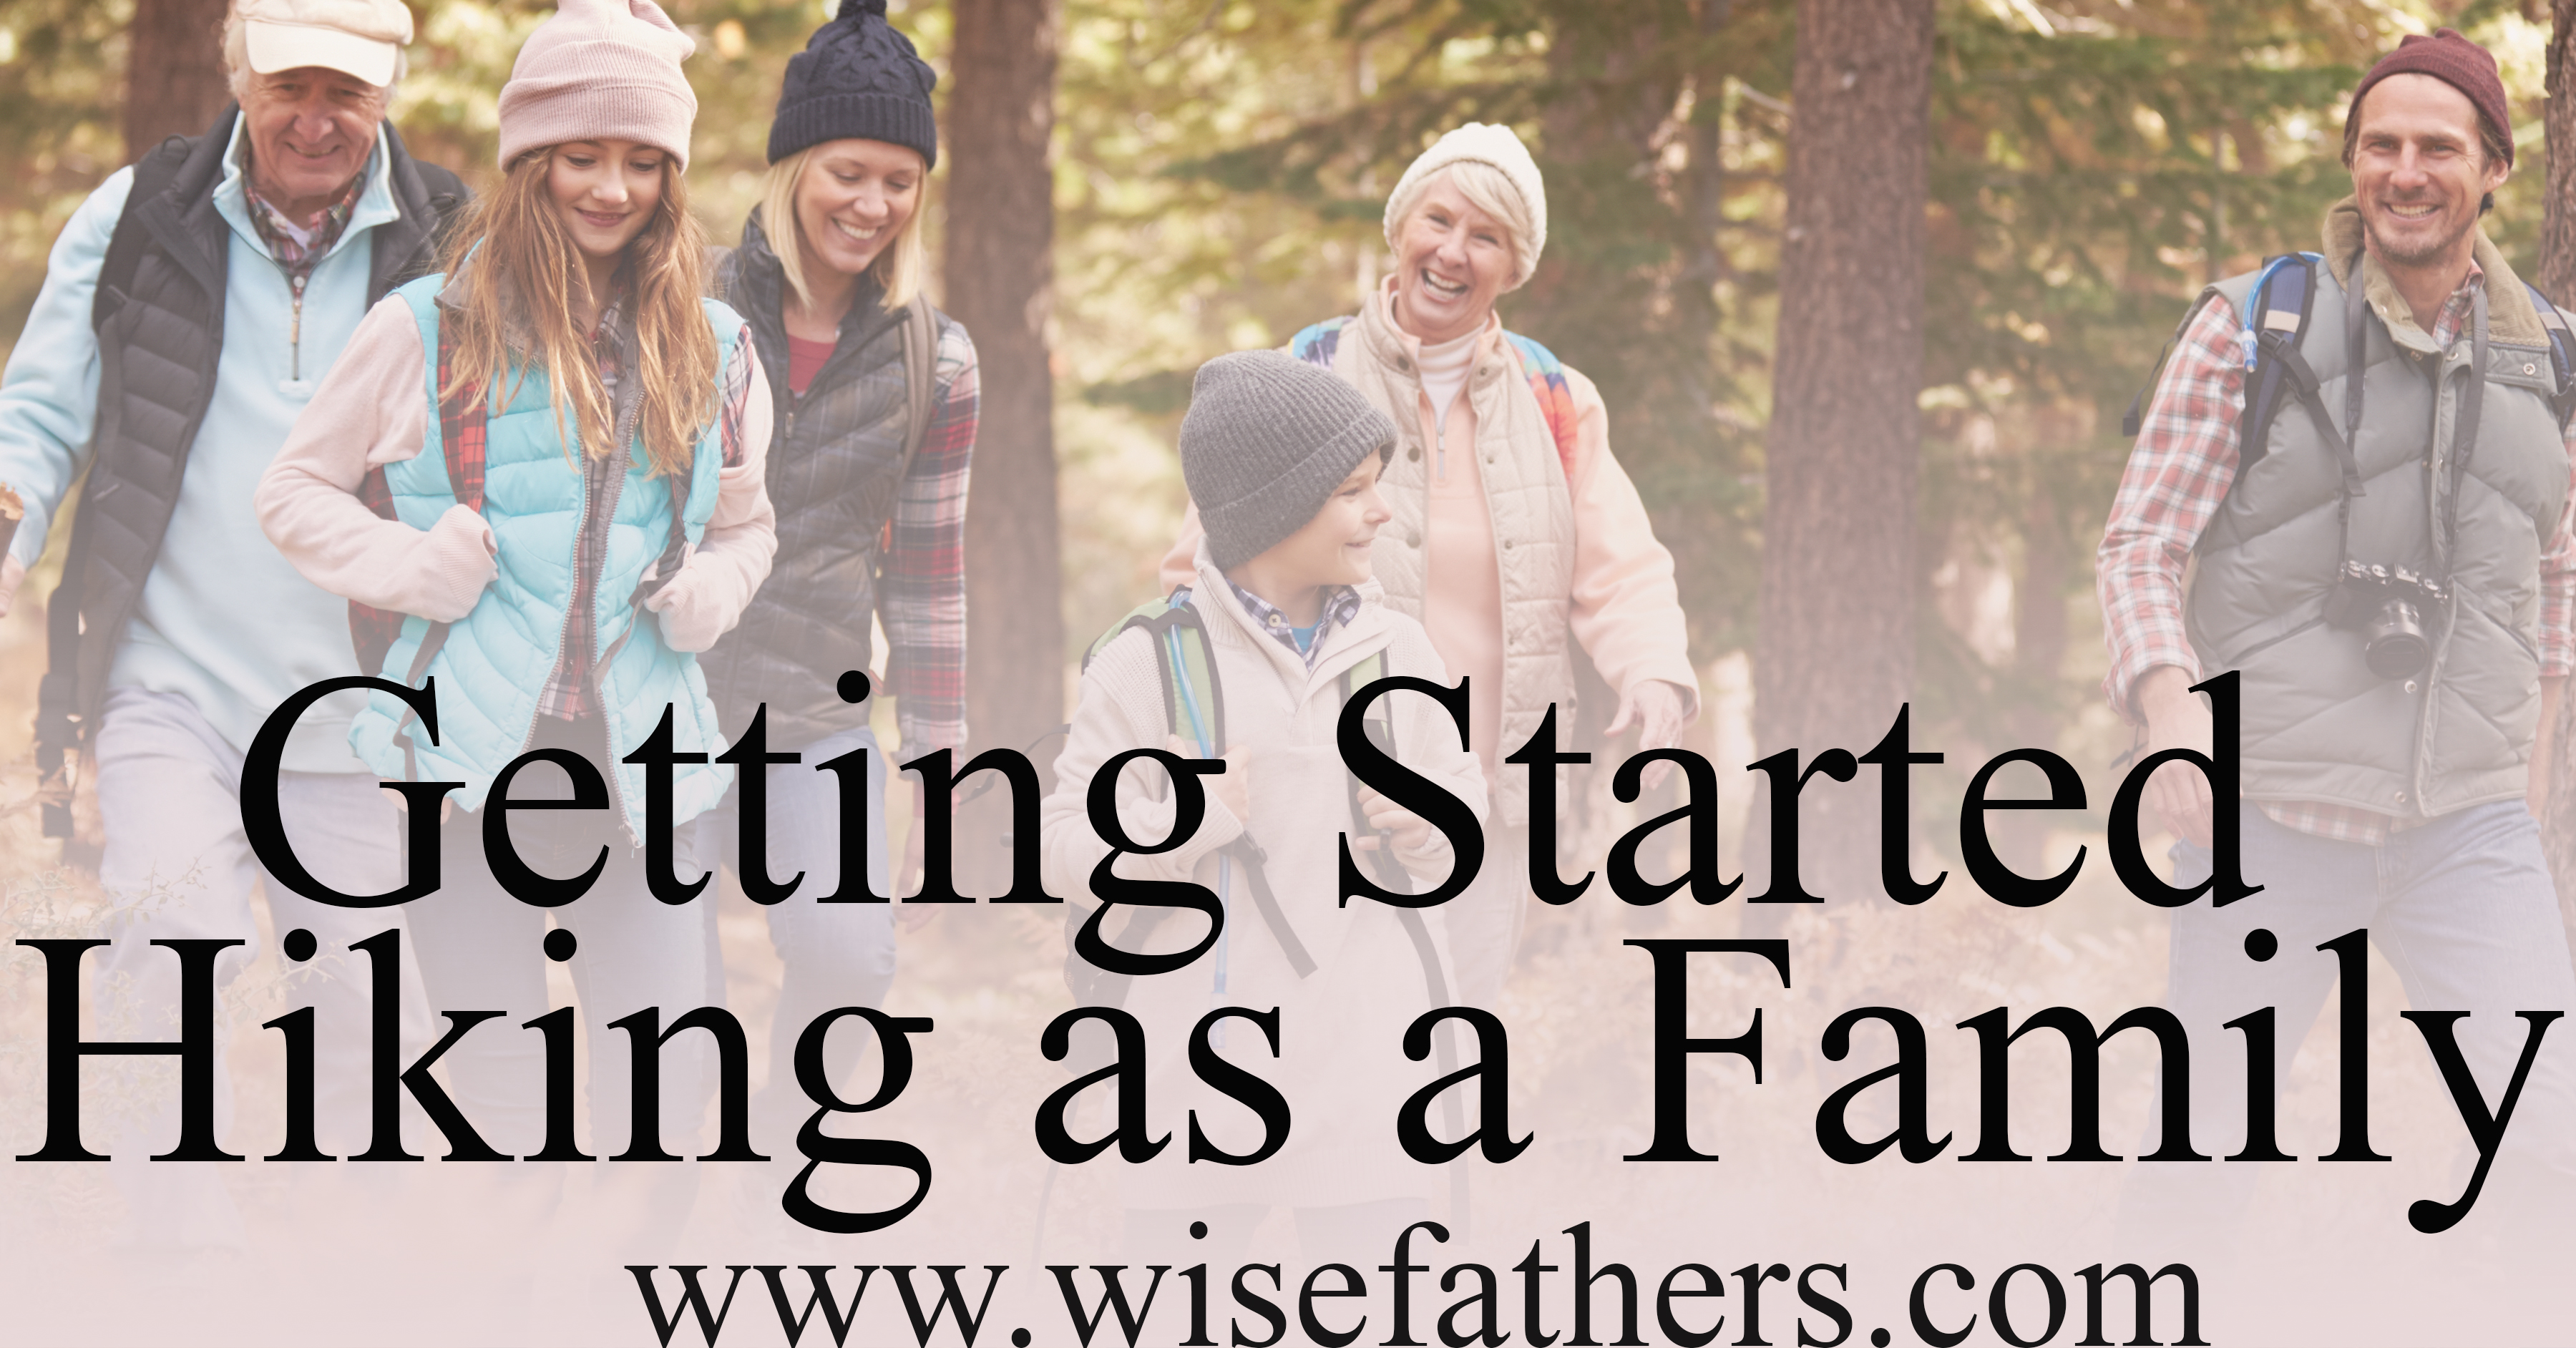 Getting Started Hiking as a Family